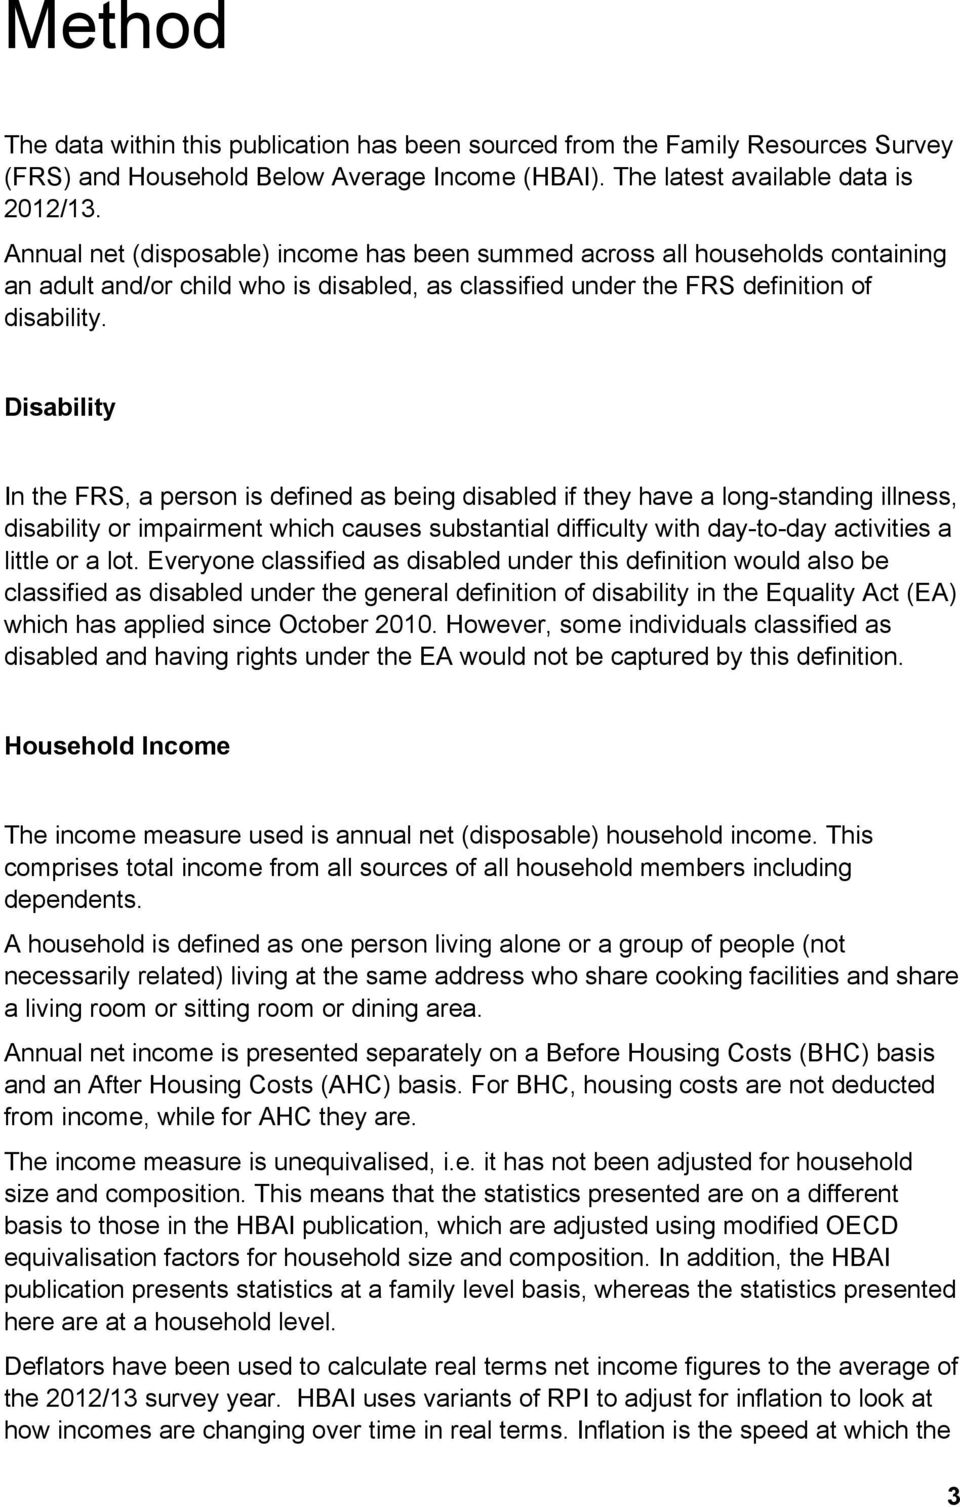 Disability In the FRS, a person is defined as being disabled if they have a long-standing illness, disability or impairment which causes substantial difficulty with day-to-day activities a little or